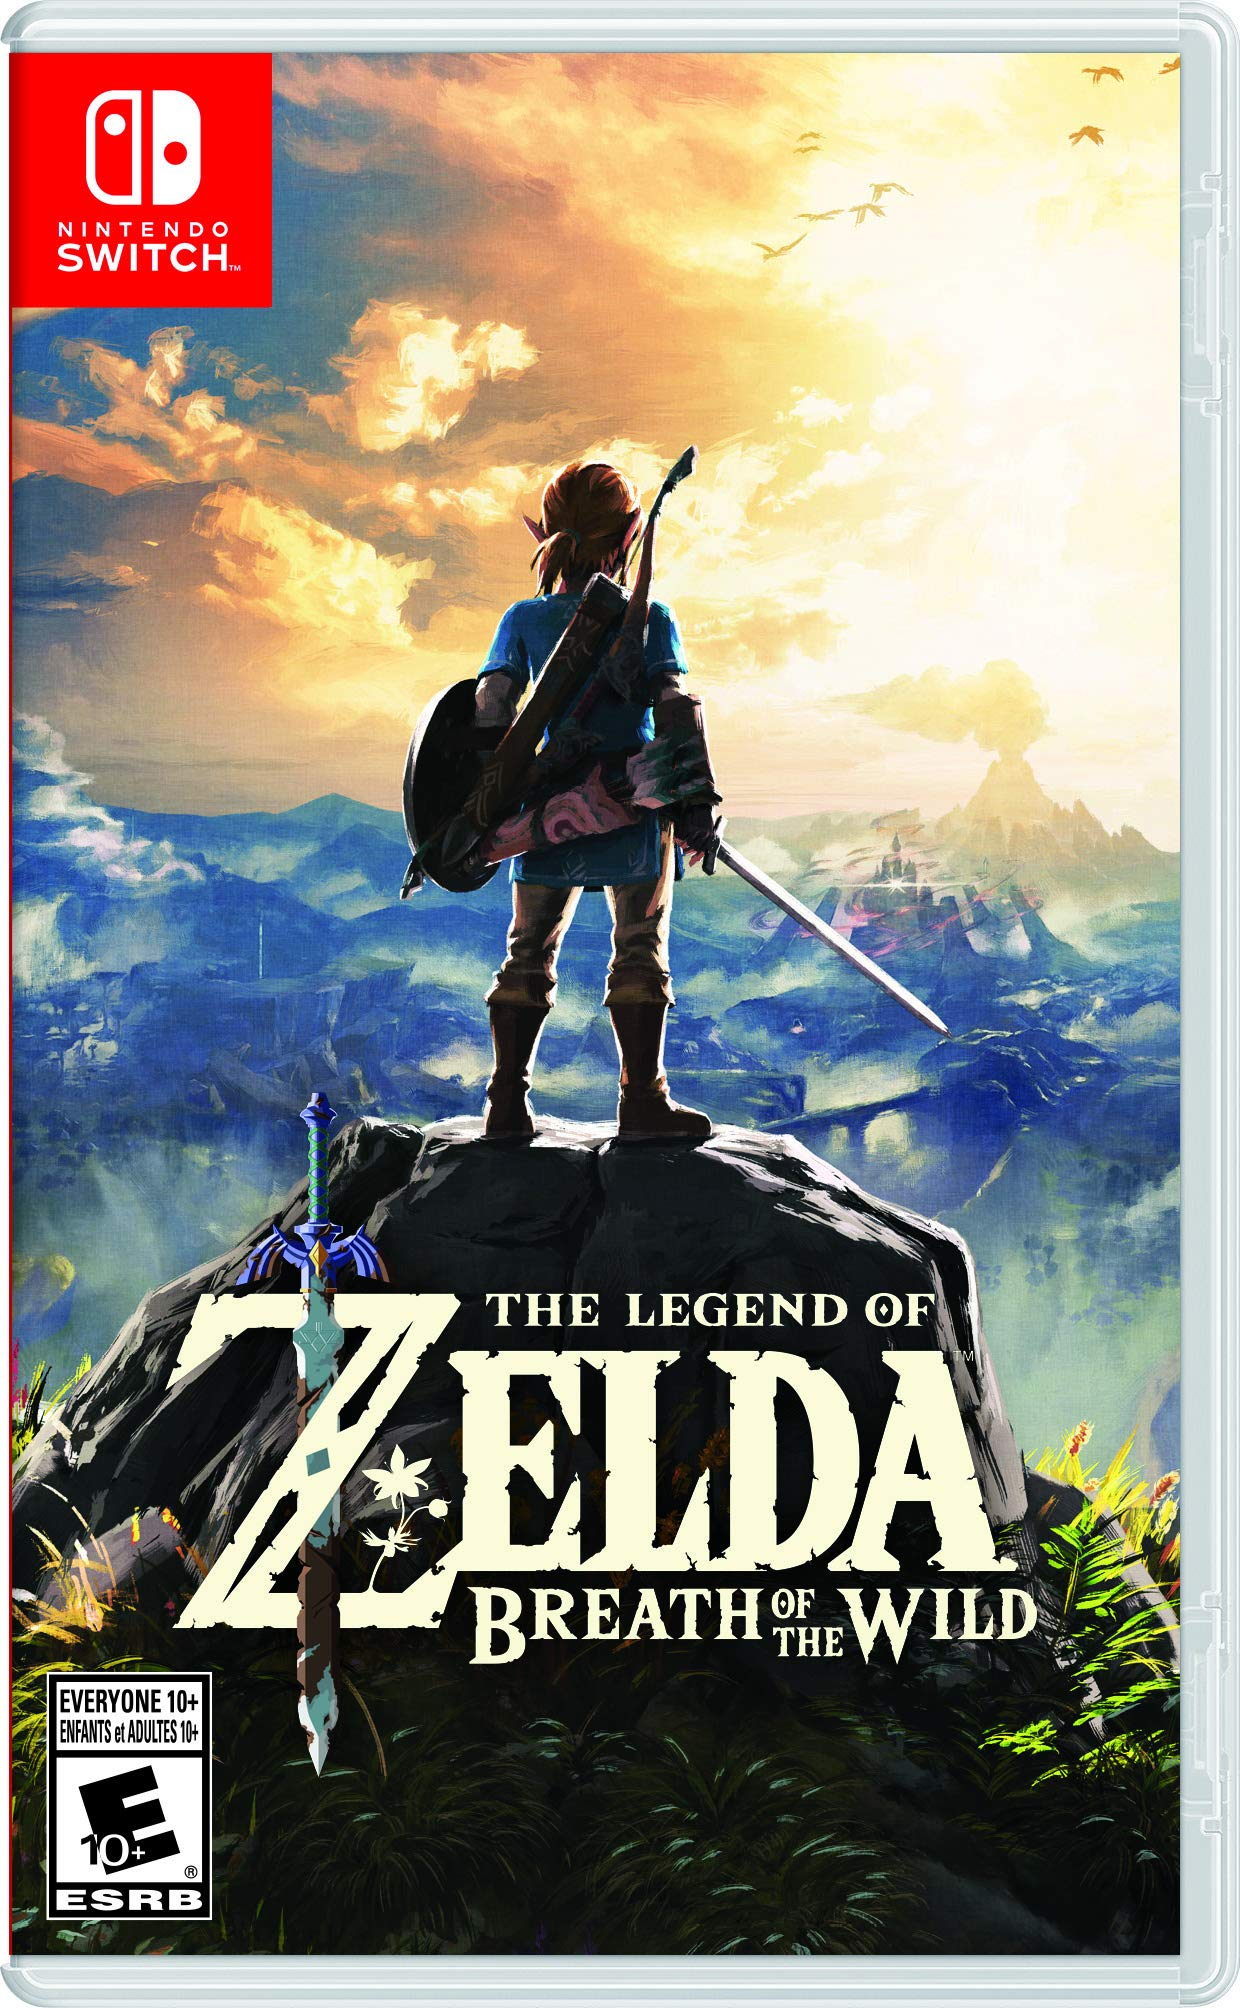 The Legend of Zelda: Breath of the Wild - Switch Edition product image